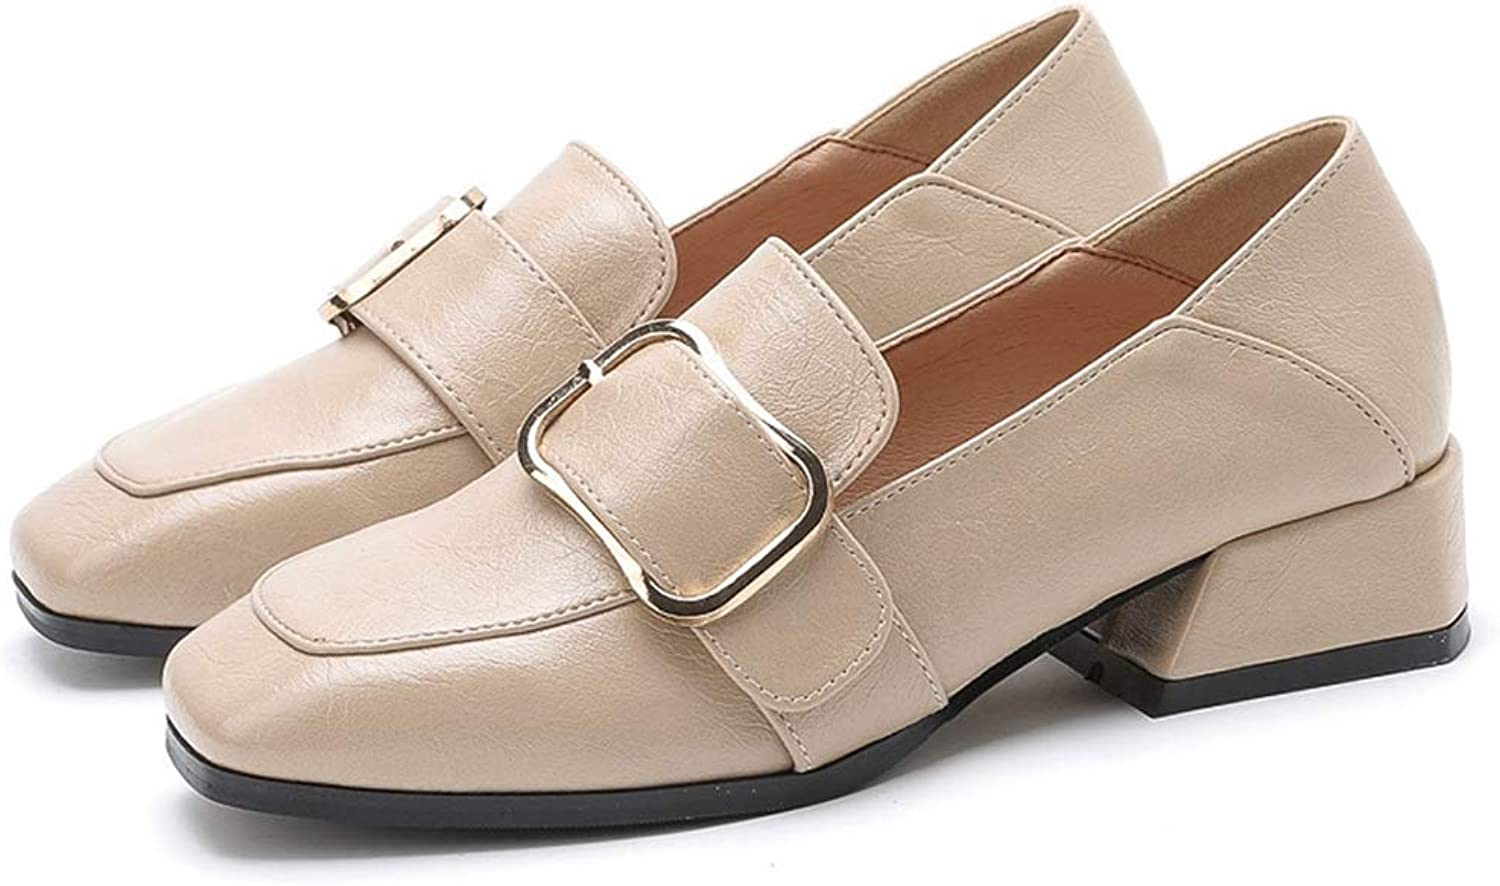 KEREE Women Casual Mid Block Heel Loafers Buckle Lightweight Comfortable Pointed Toe Slip On Oxford shoes